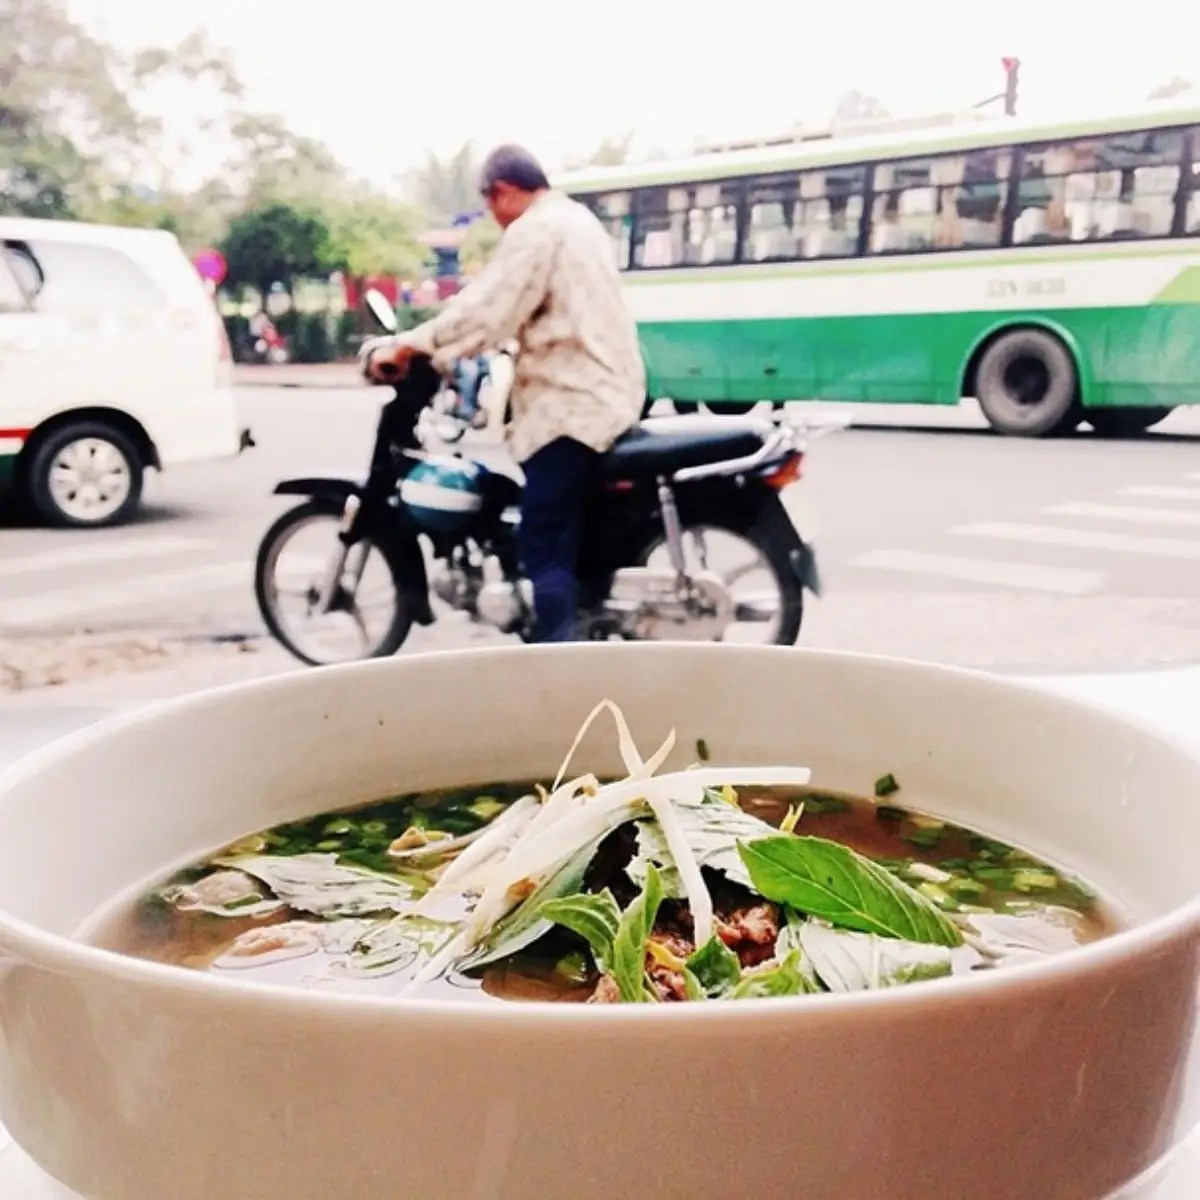 A bowl of pho for breakfast in Ho Chi Minh City, Vietnam. Pho is a Vietnamese noodle soup with the most delicious clear beef broth and plenty of herbs.